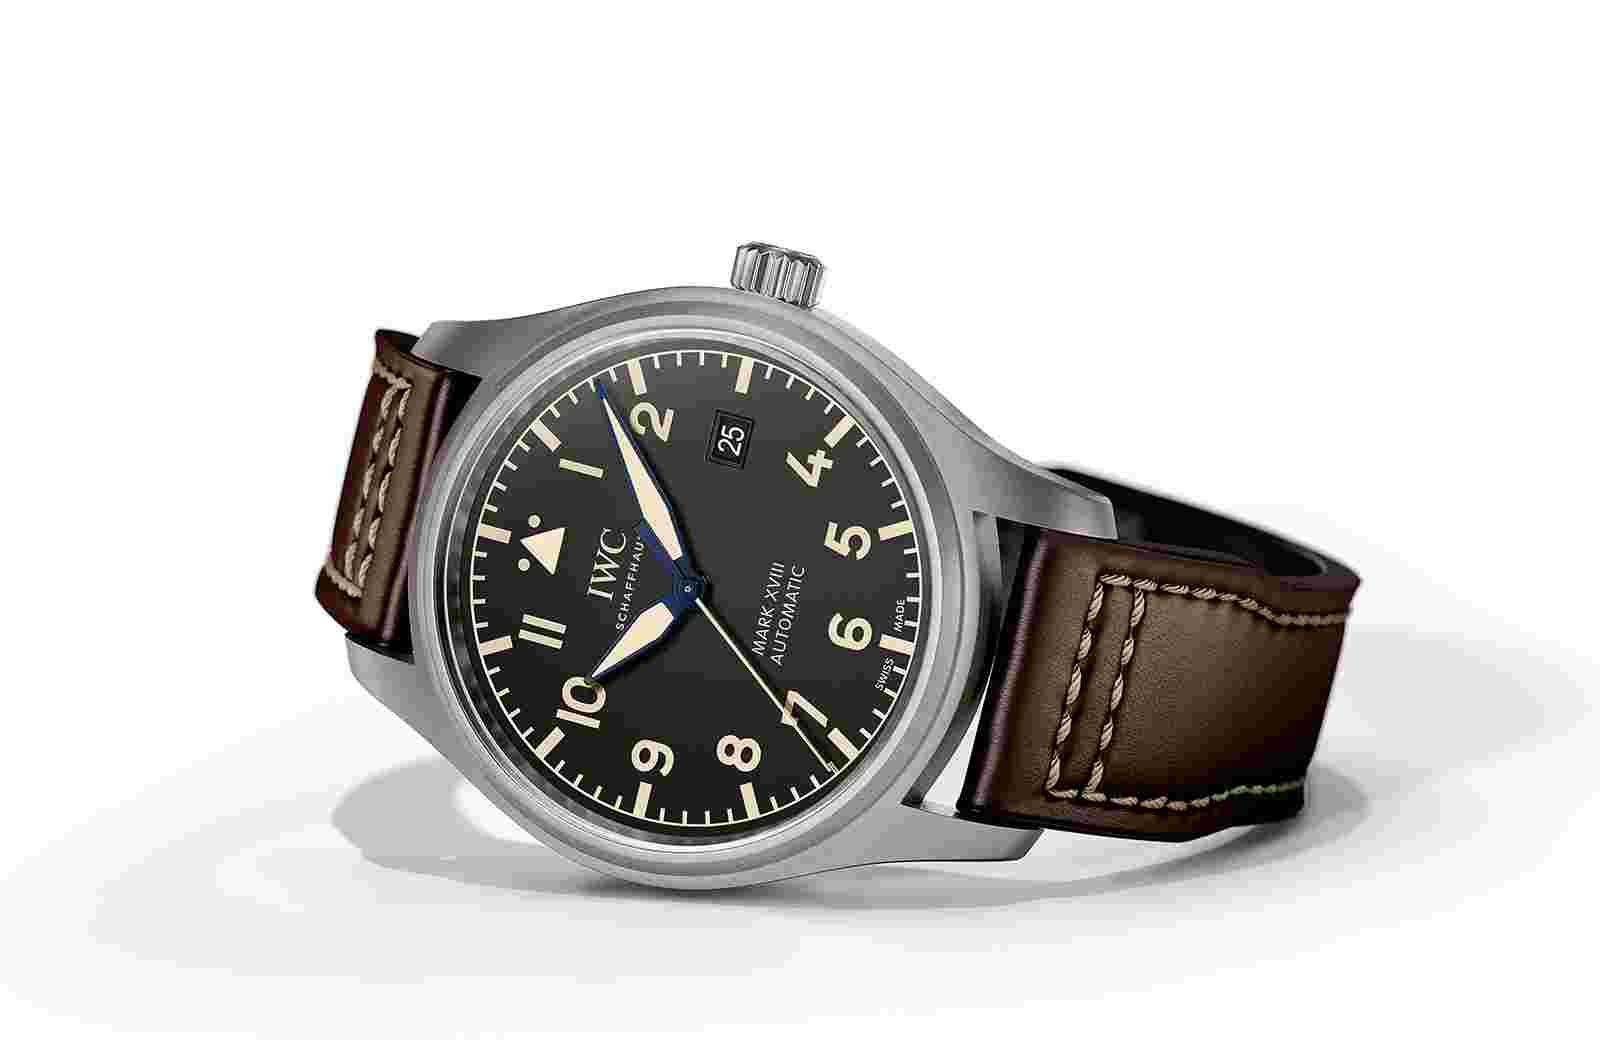 Replica IWC Pilot's Mark XVIII Heritage Titanium Watch Review